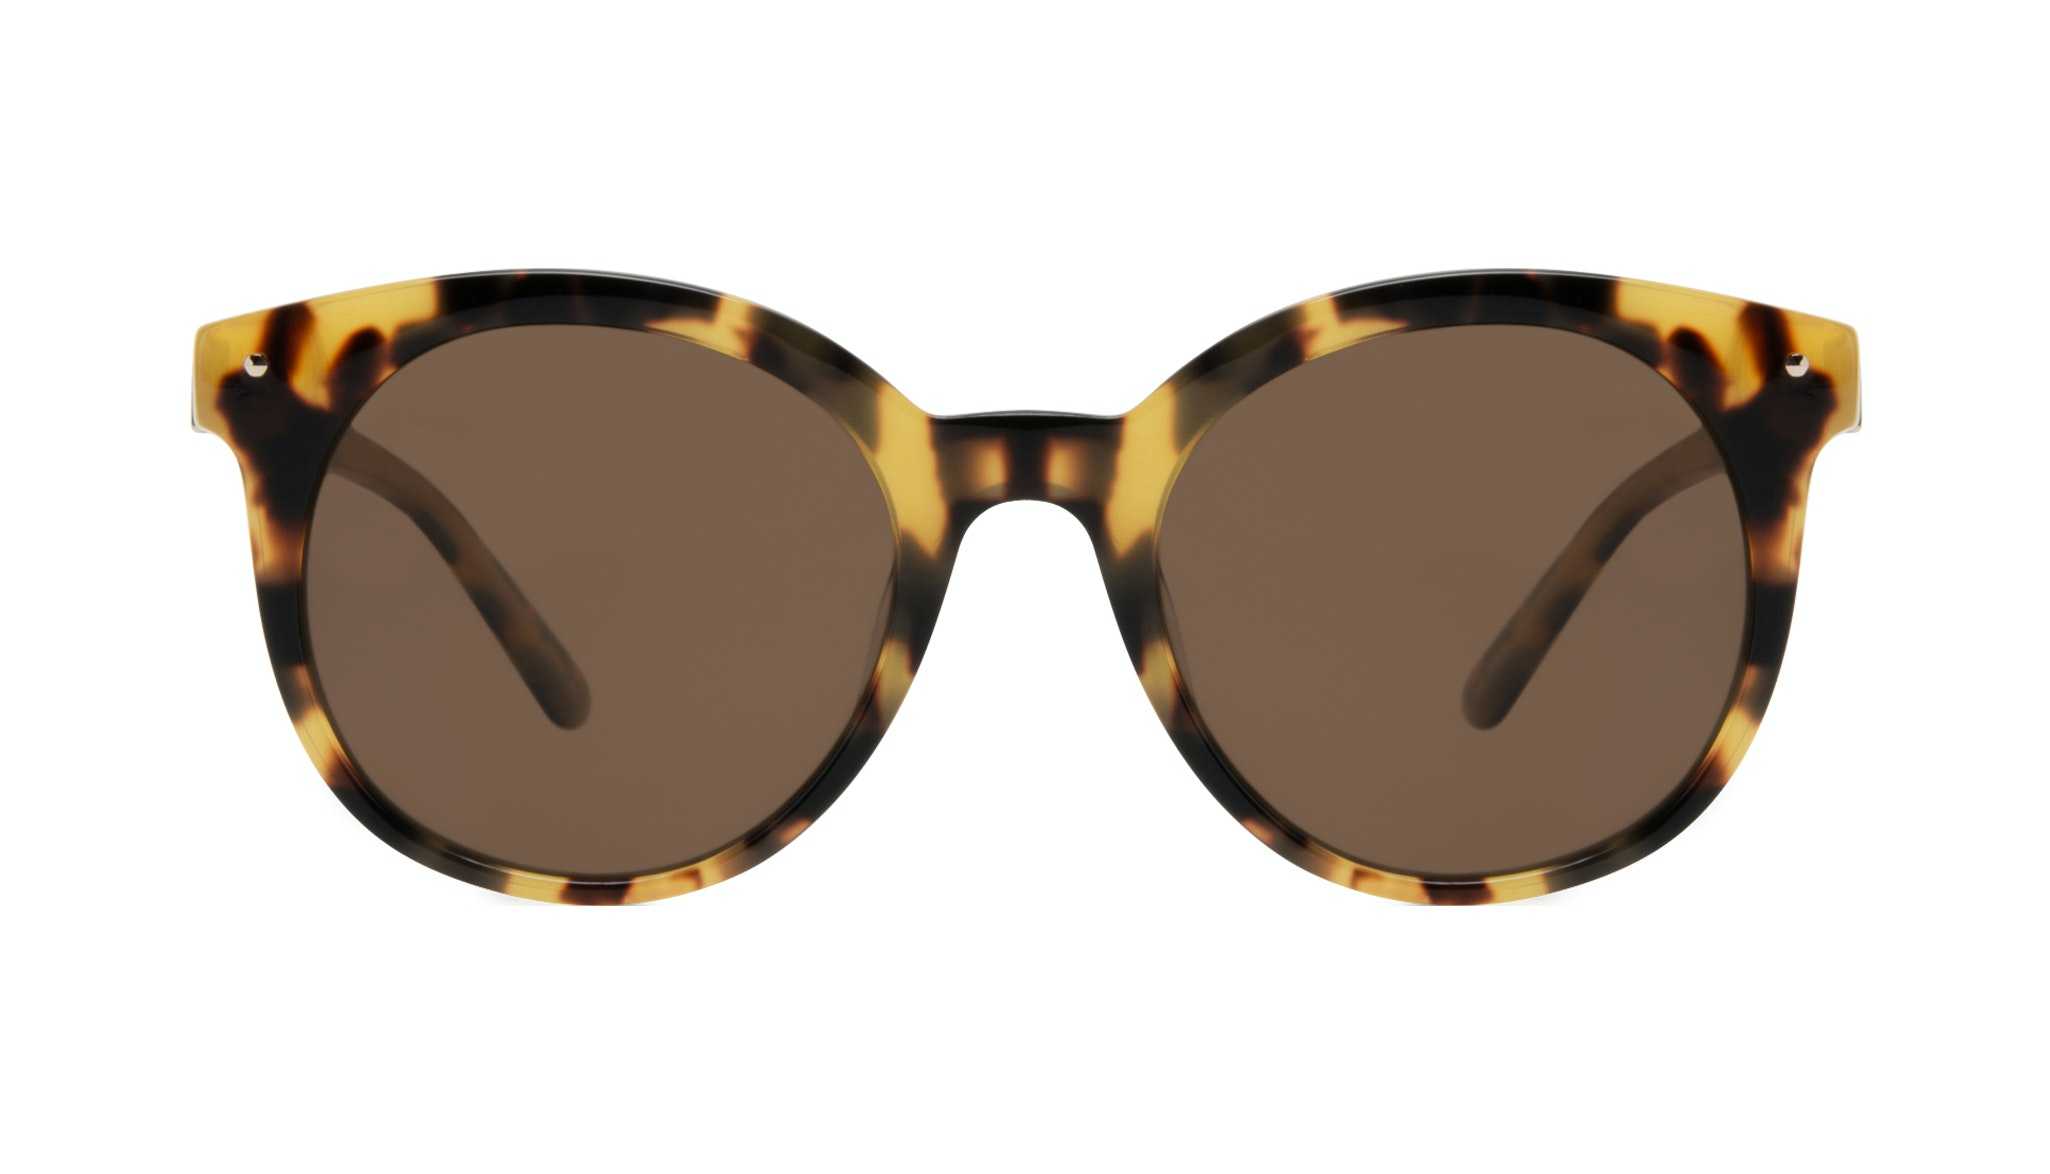 Affordable Fashion Glasses Round Sunglasses Women Hip Tortoise